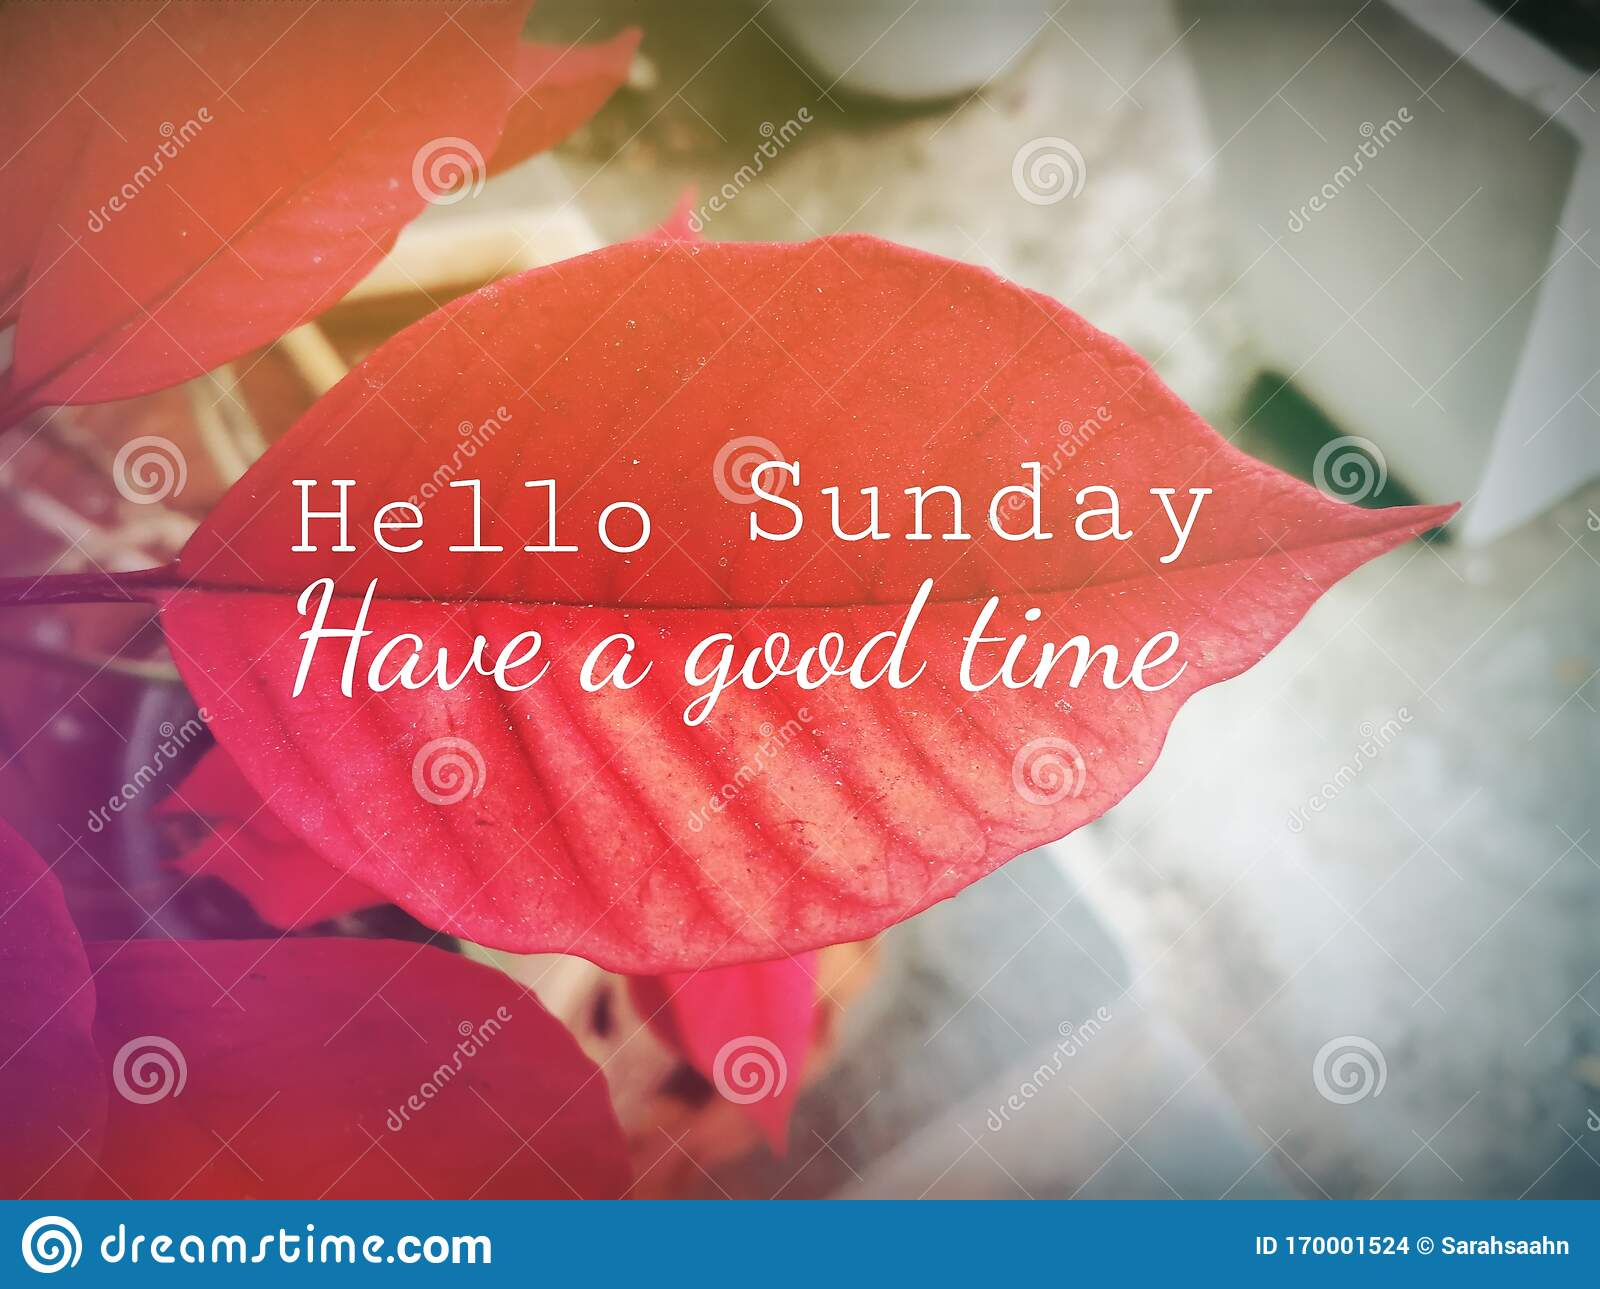 Quote on Red Leaf Saying Hello Sunday, Have a Good Time. Stock ...